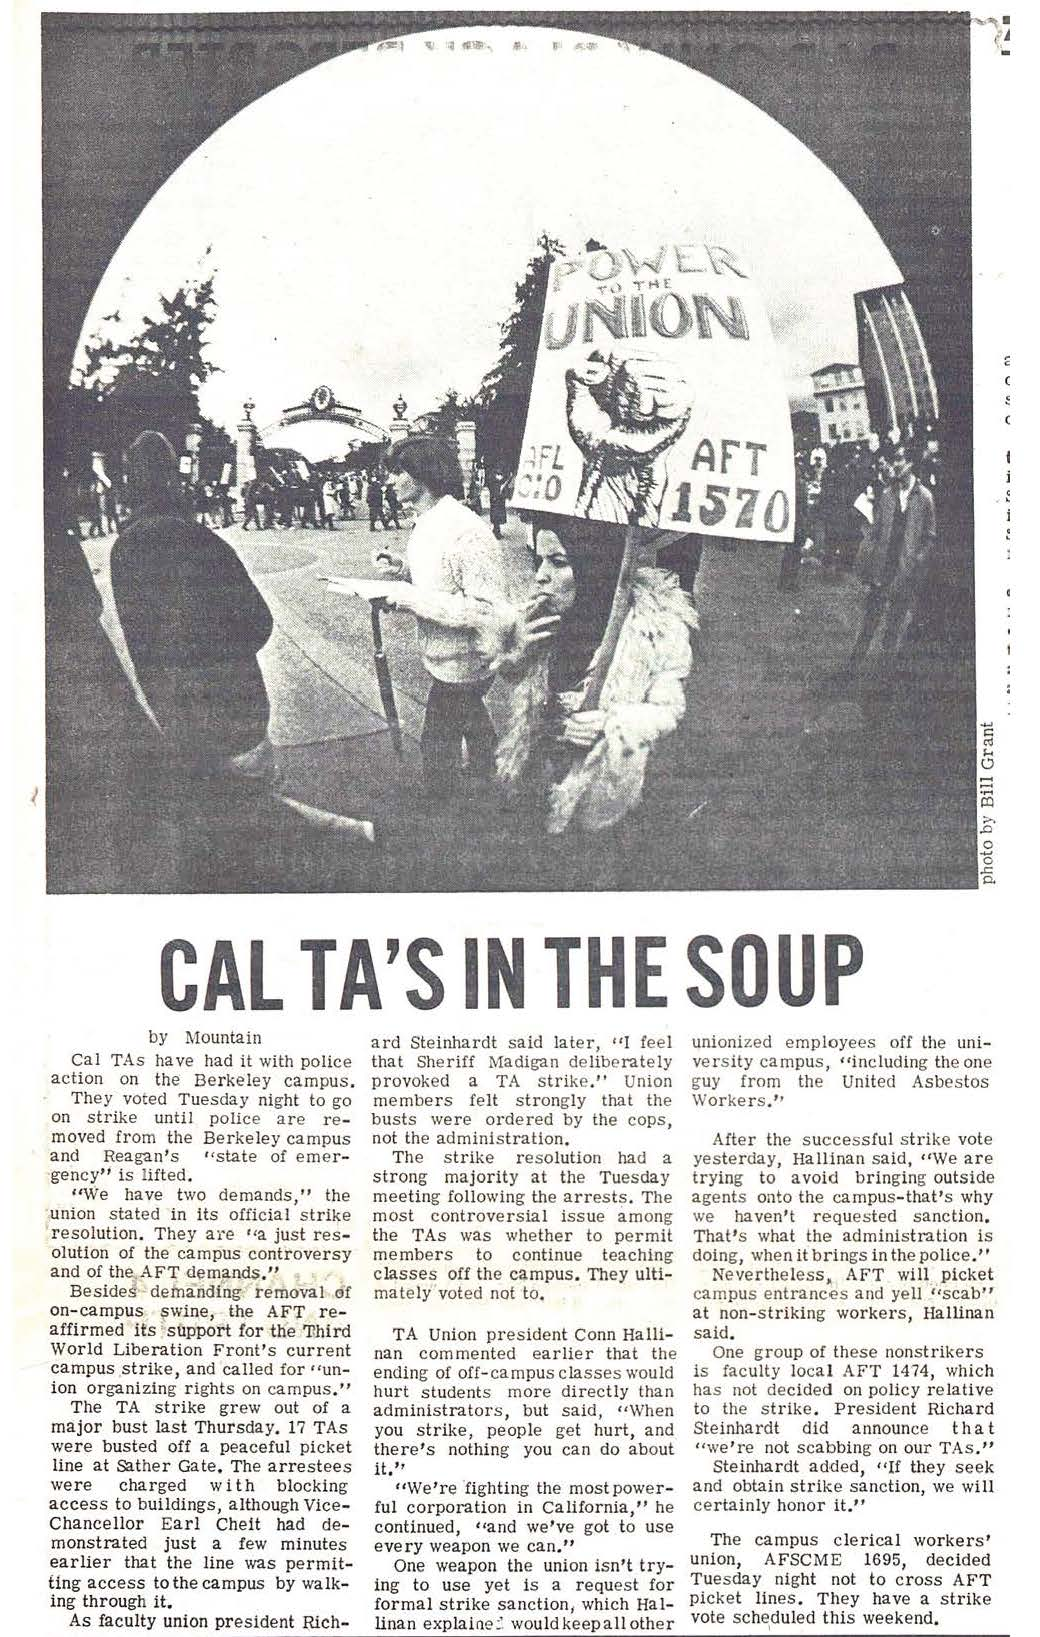 Cal TA's in the Soup